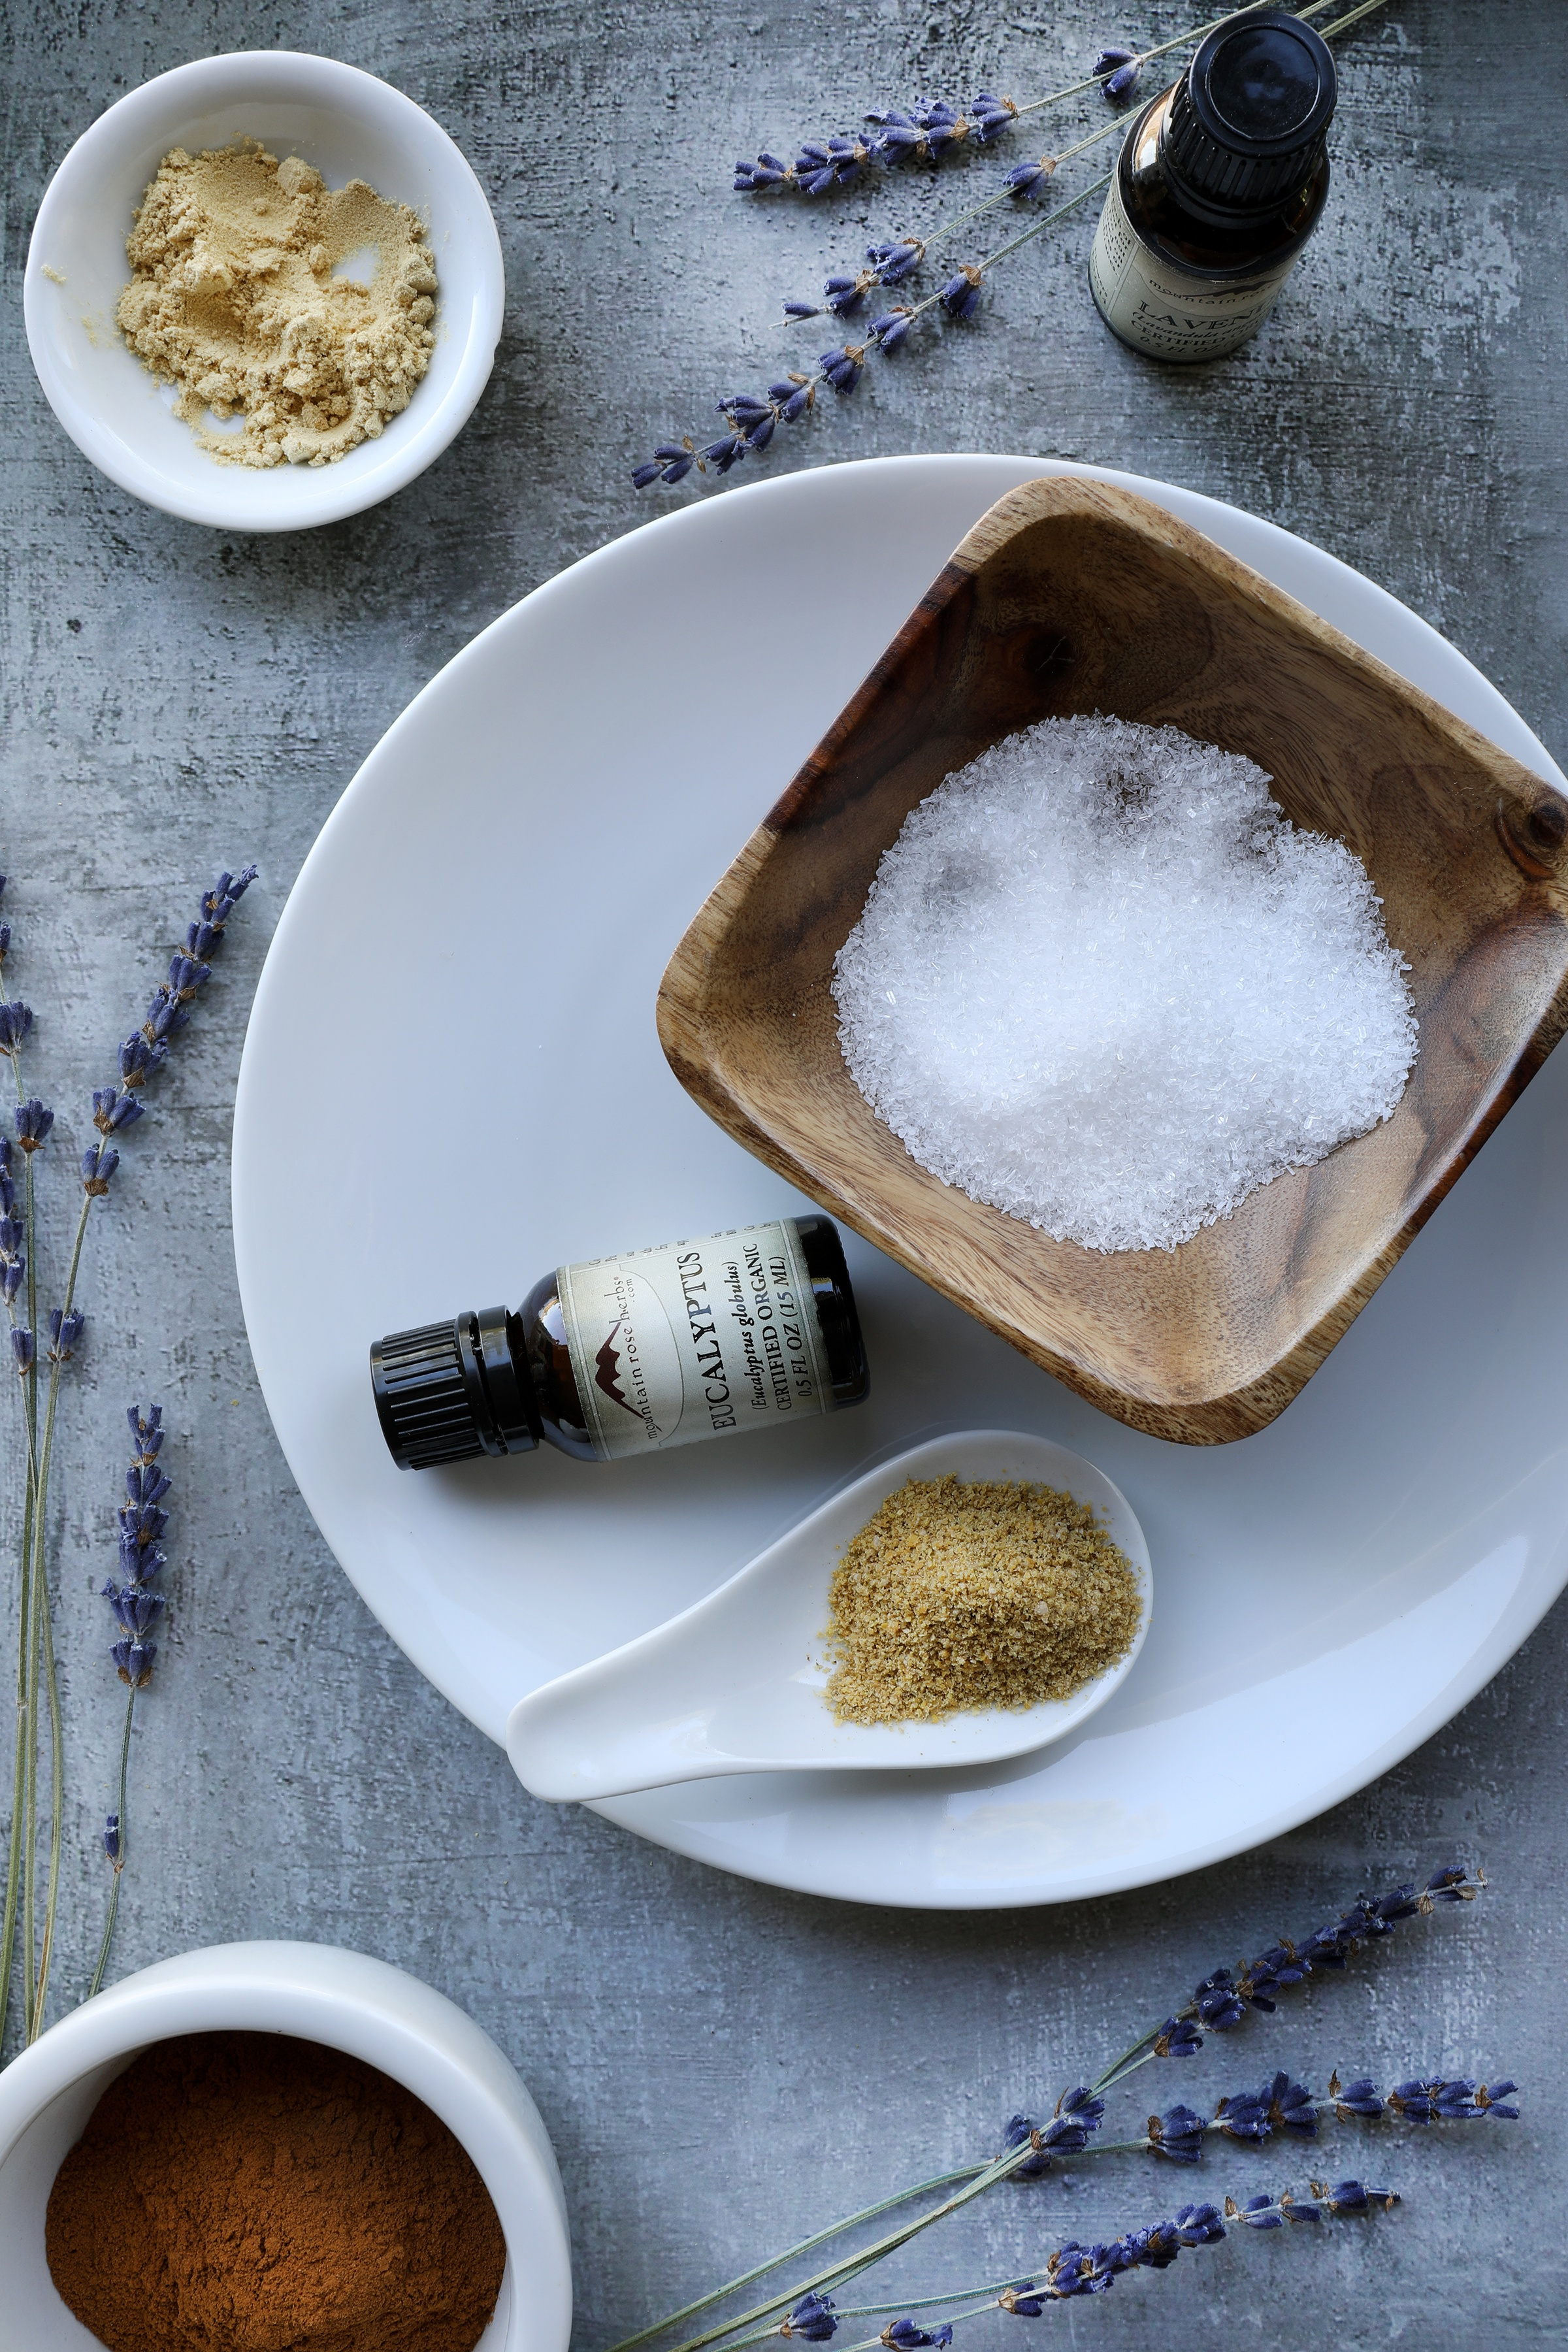 Ingredients for bath salts on rustic table with sprigs of lavender